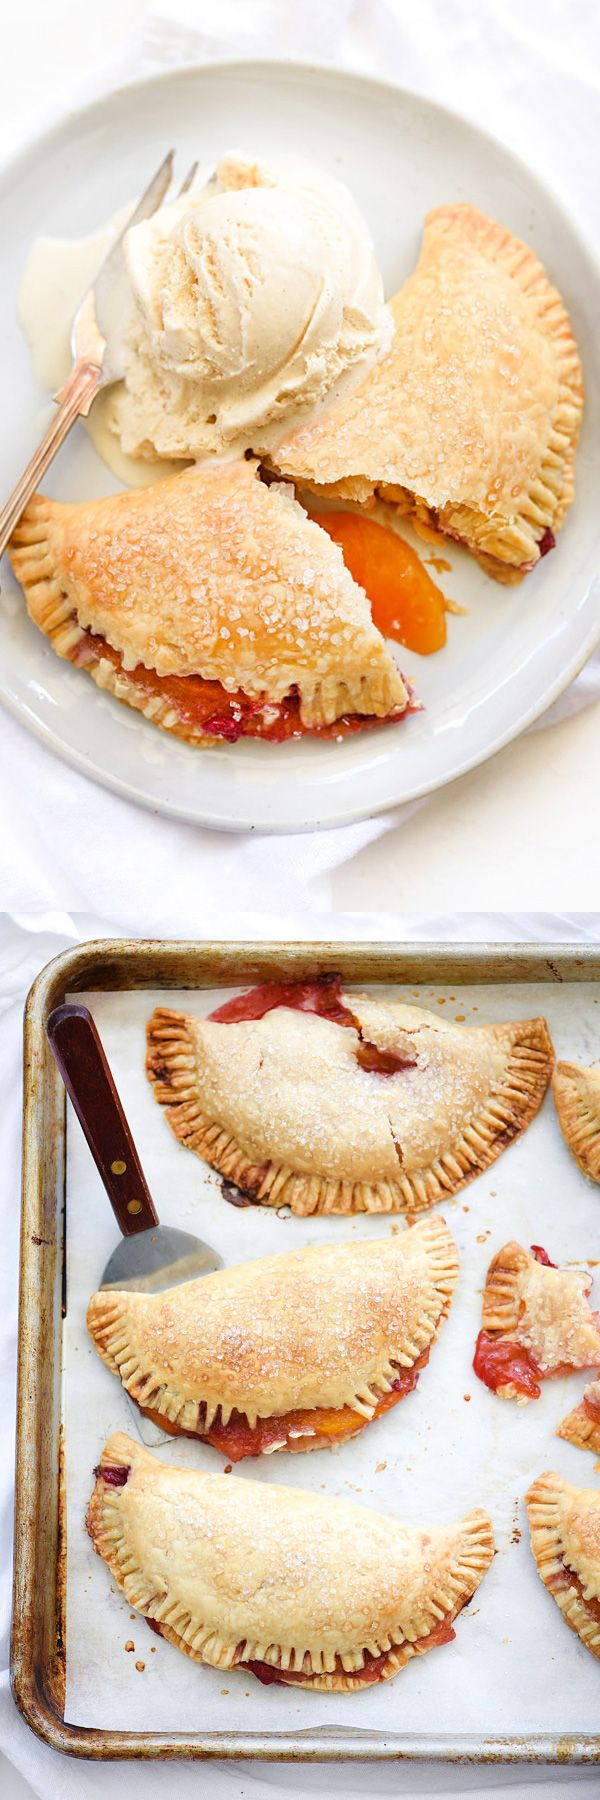 Store-bought pie crust and the season's freshest fruit makes these simple hand pies an easy dessert or snack. Especially when served with a dollop of ice cream on the side. | foodiecrush.com